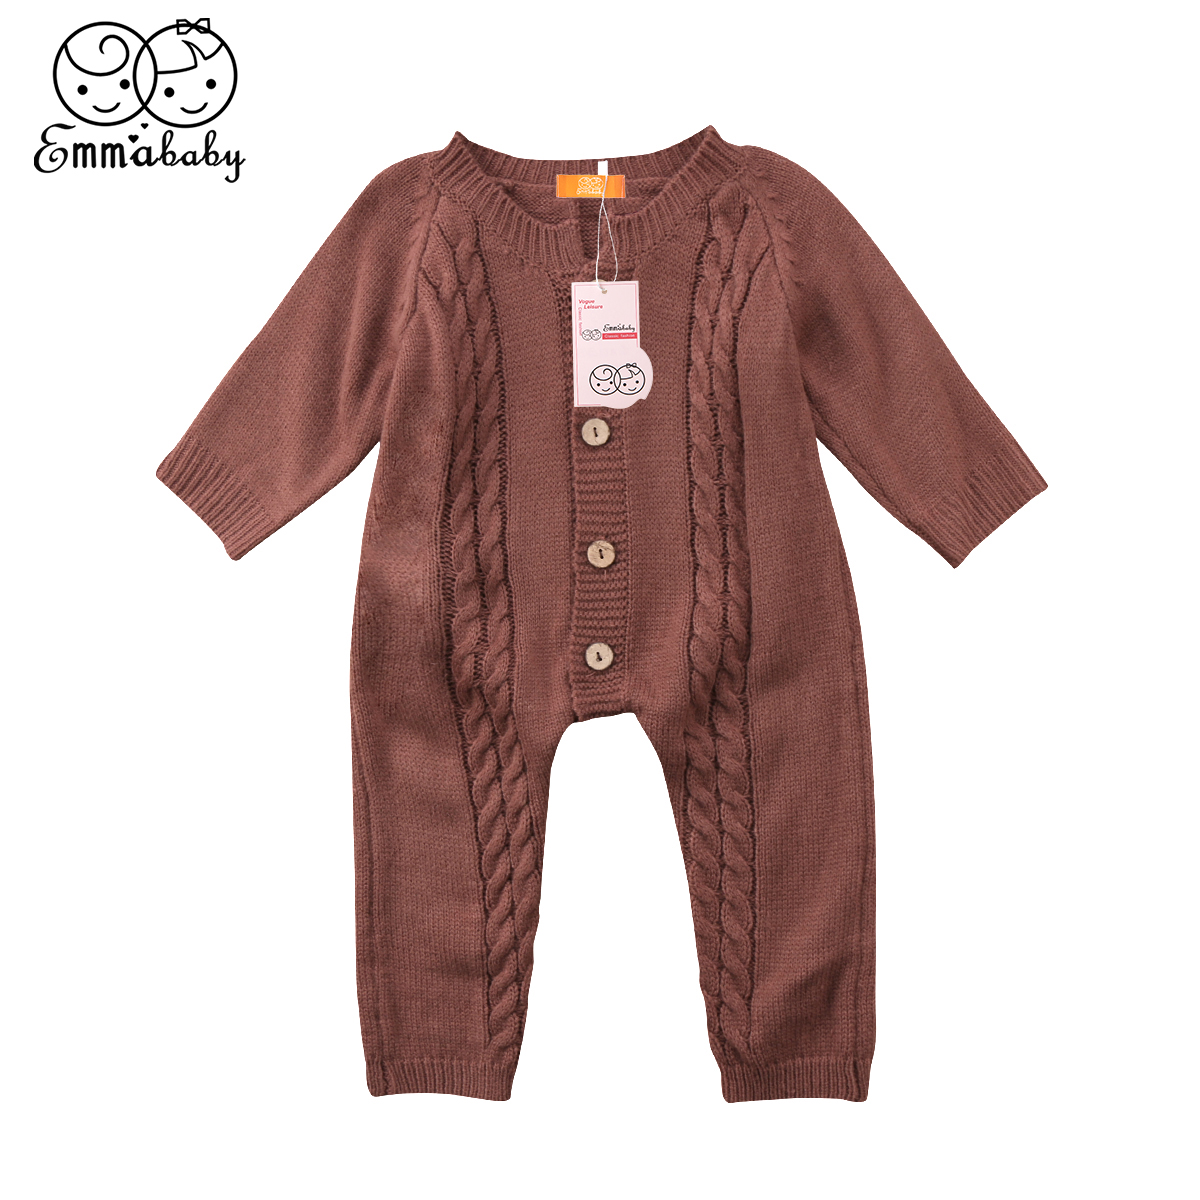 2018 new fashion winer warm knit rompers Infant Newborn Baby Boys Girls long sleeve Jumpsuit Romper knitting Clothes Outfits 2016 autumn baby rompers boys girls long sleeves jumpsuit 100% cotton infant romper newborn overall kids striped fashion clothes